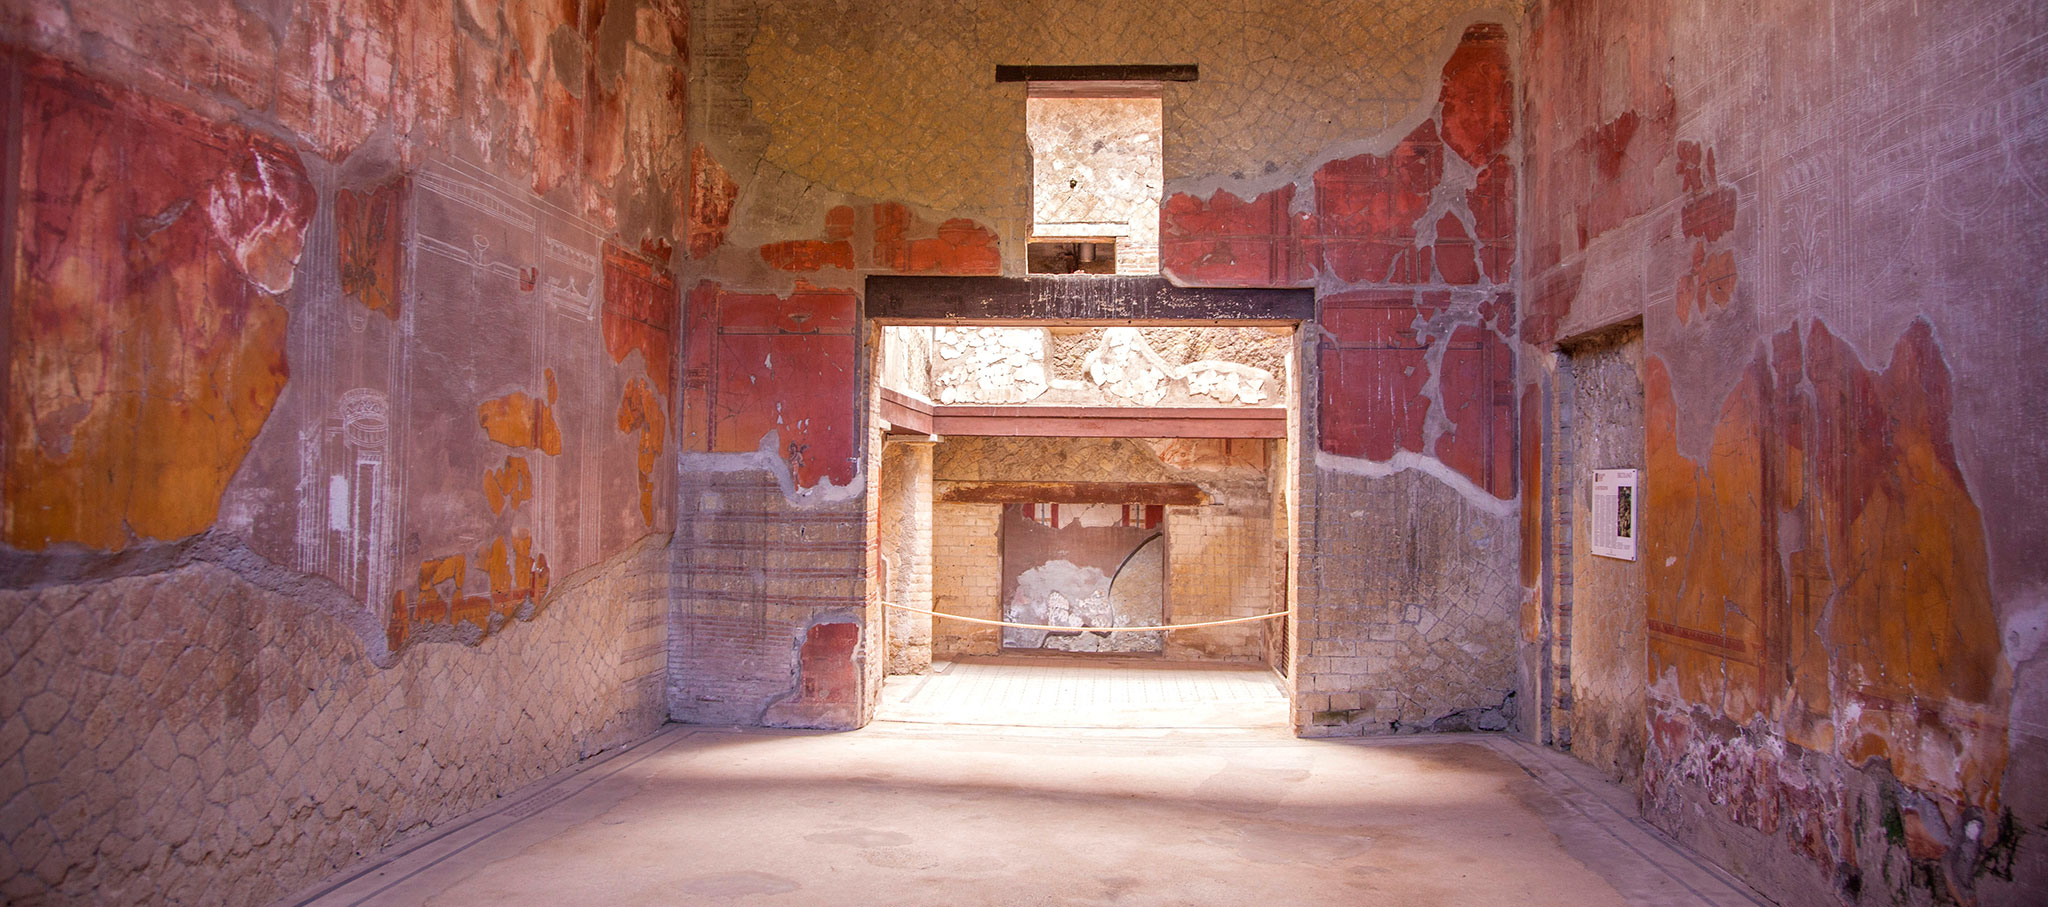 Casa del Bel Cortile (1st century AD), Herculaneum. Courtesy of Parco Archeologico di Ercolano and Expanded Interiors